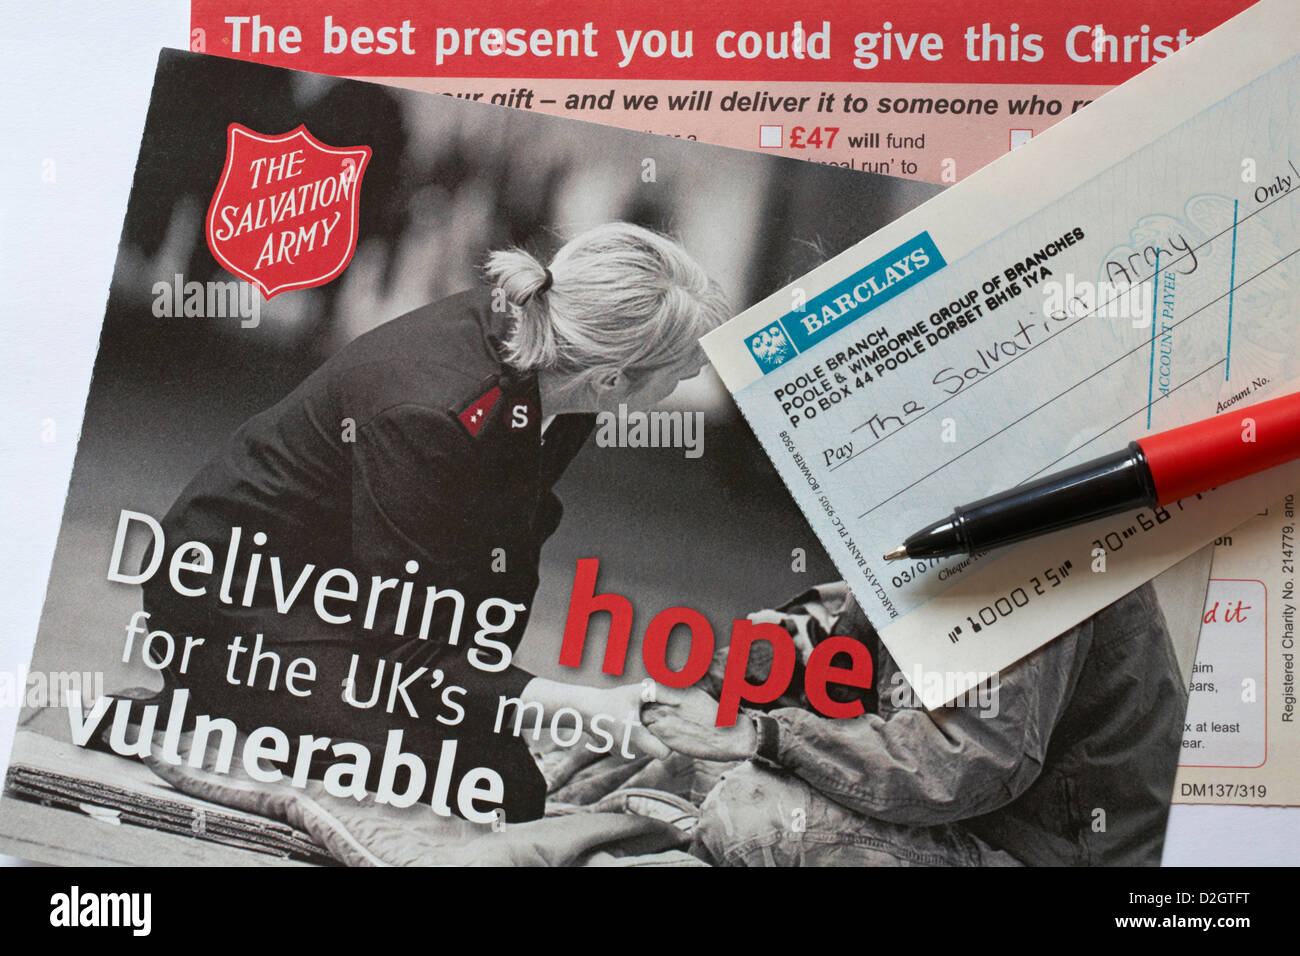 Writing cheque to The Salvation Army with info from charity Delivering hope for the UKs most vulnerable the best - Stock Image